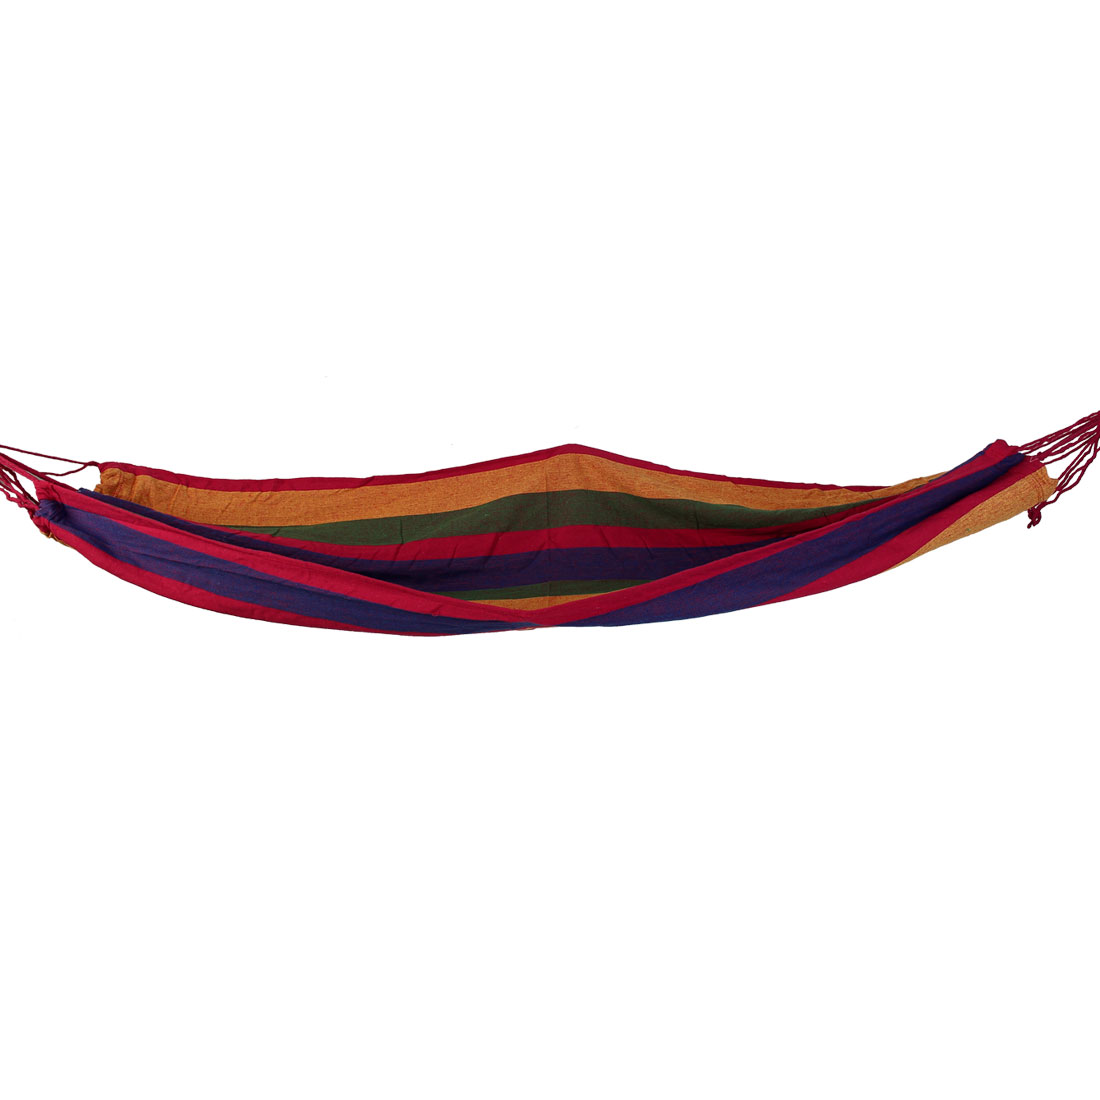 280cm x 82cm Striped Pattern Outdoor Camping Hanging Single Hammock Canvas Bed Red w Strap